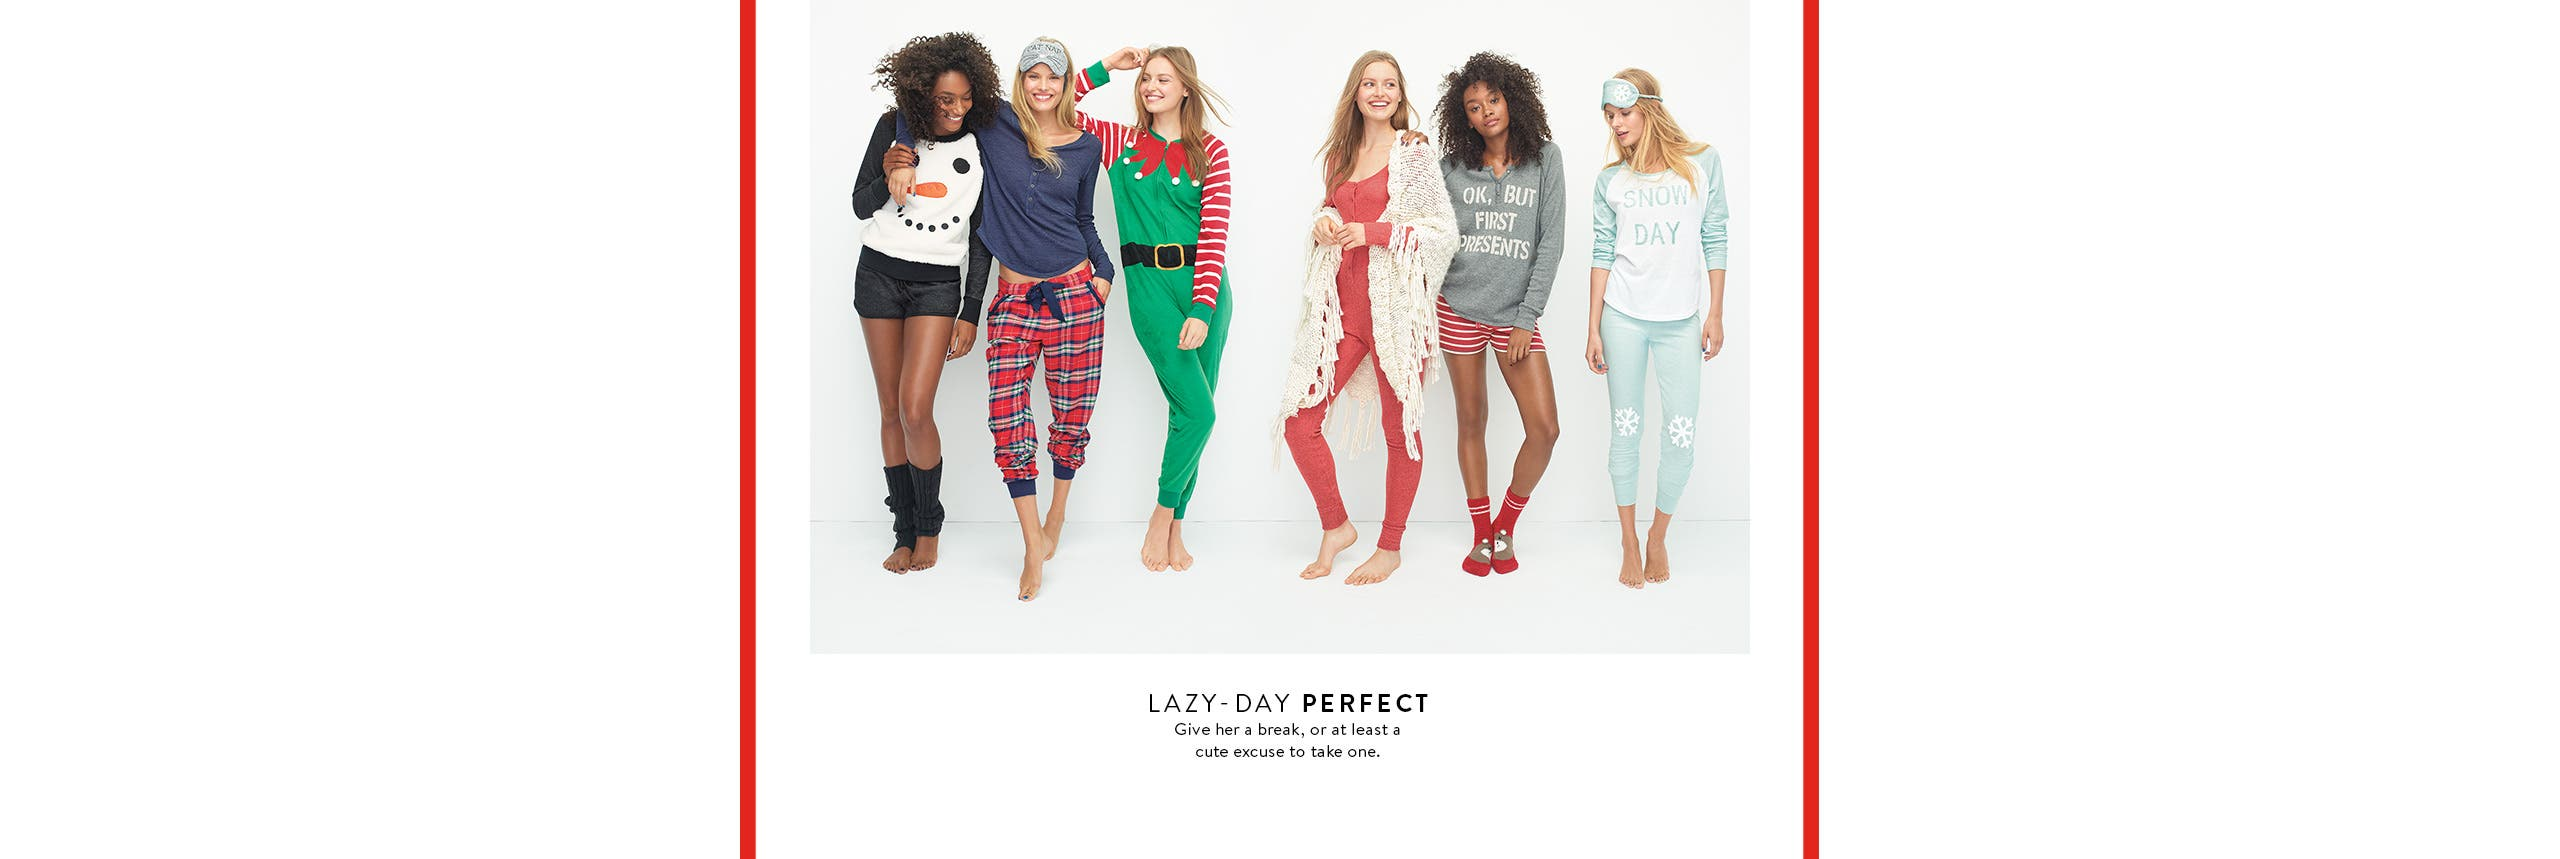 Buy Nordstrom Gift Cards Online E Gift Cards For Sale ...